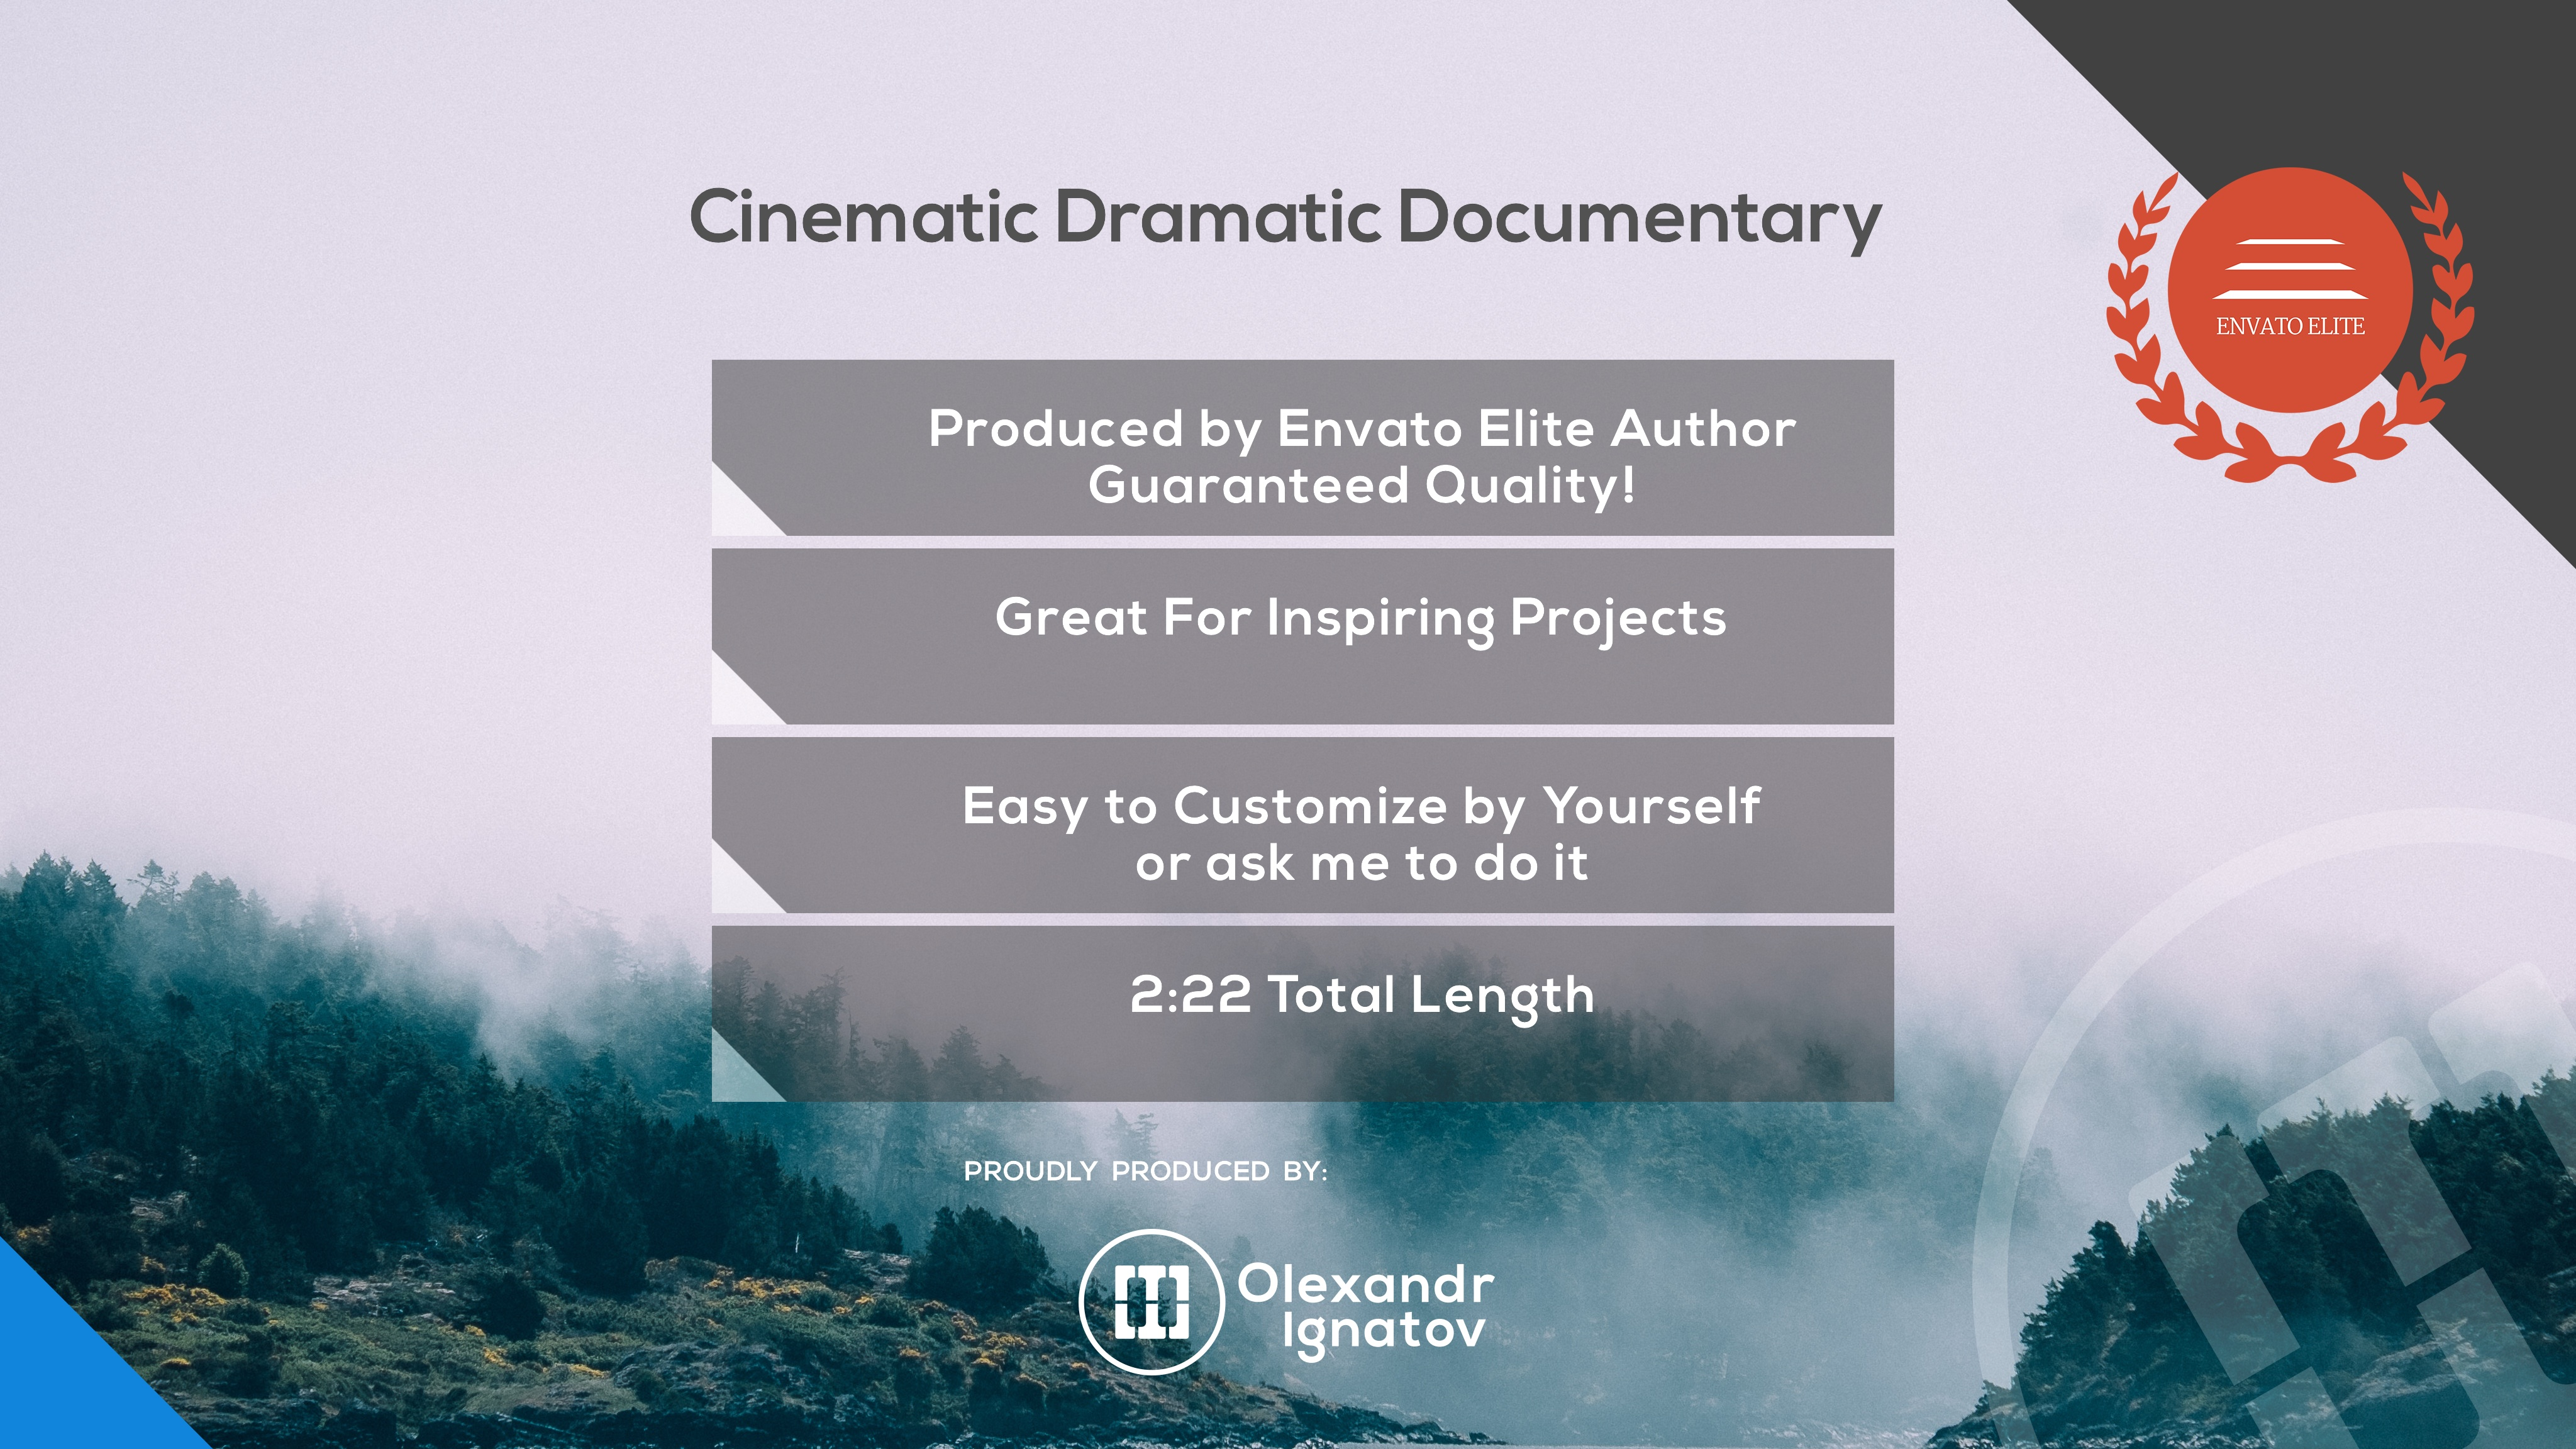 cinematic essay documentary Rudiger suchsland's cinematic essay examines films produced during nazi-era germany rudiger suchsland's documentary chronicling german cinema during the nazi era has the perverse effect of making you want to watch many of the films under discussion it's understandable, considering the fascinating.